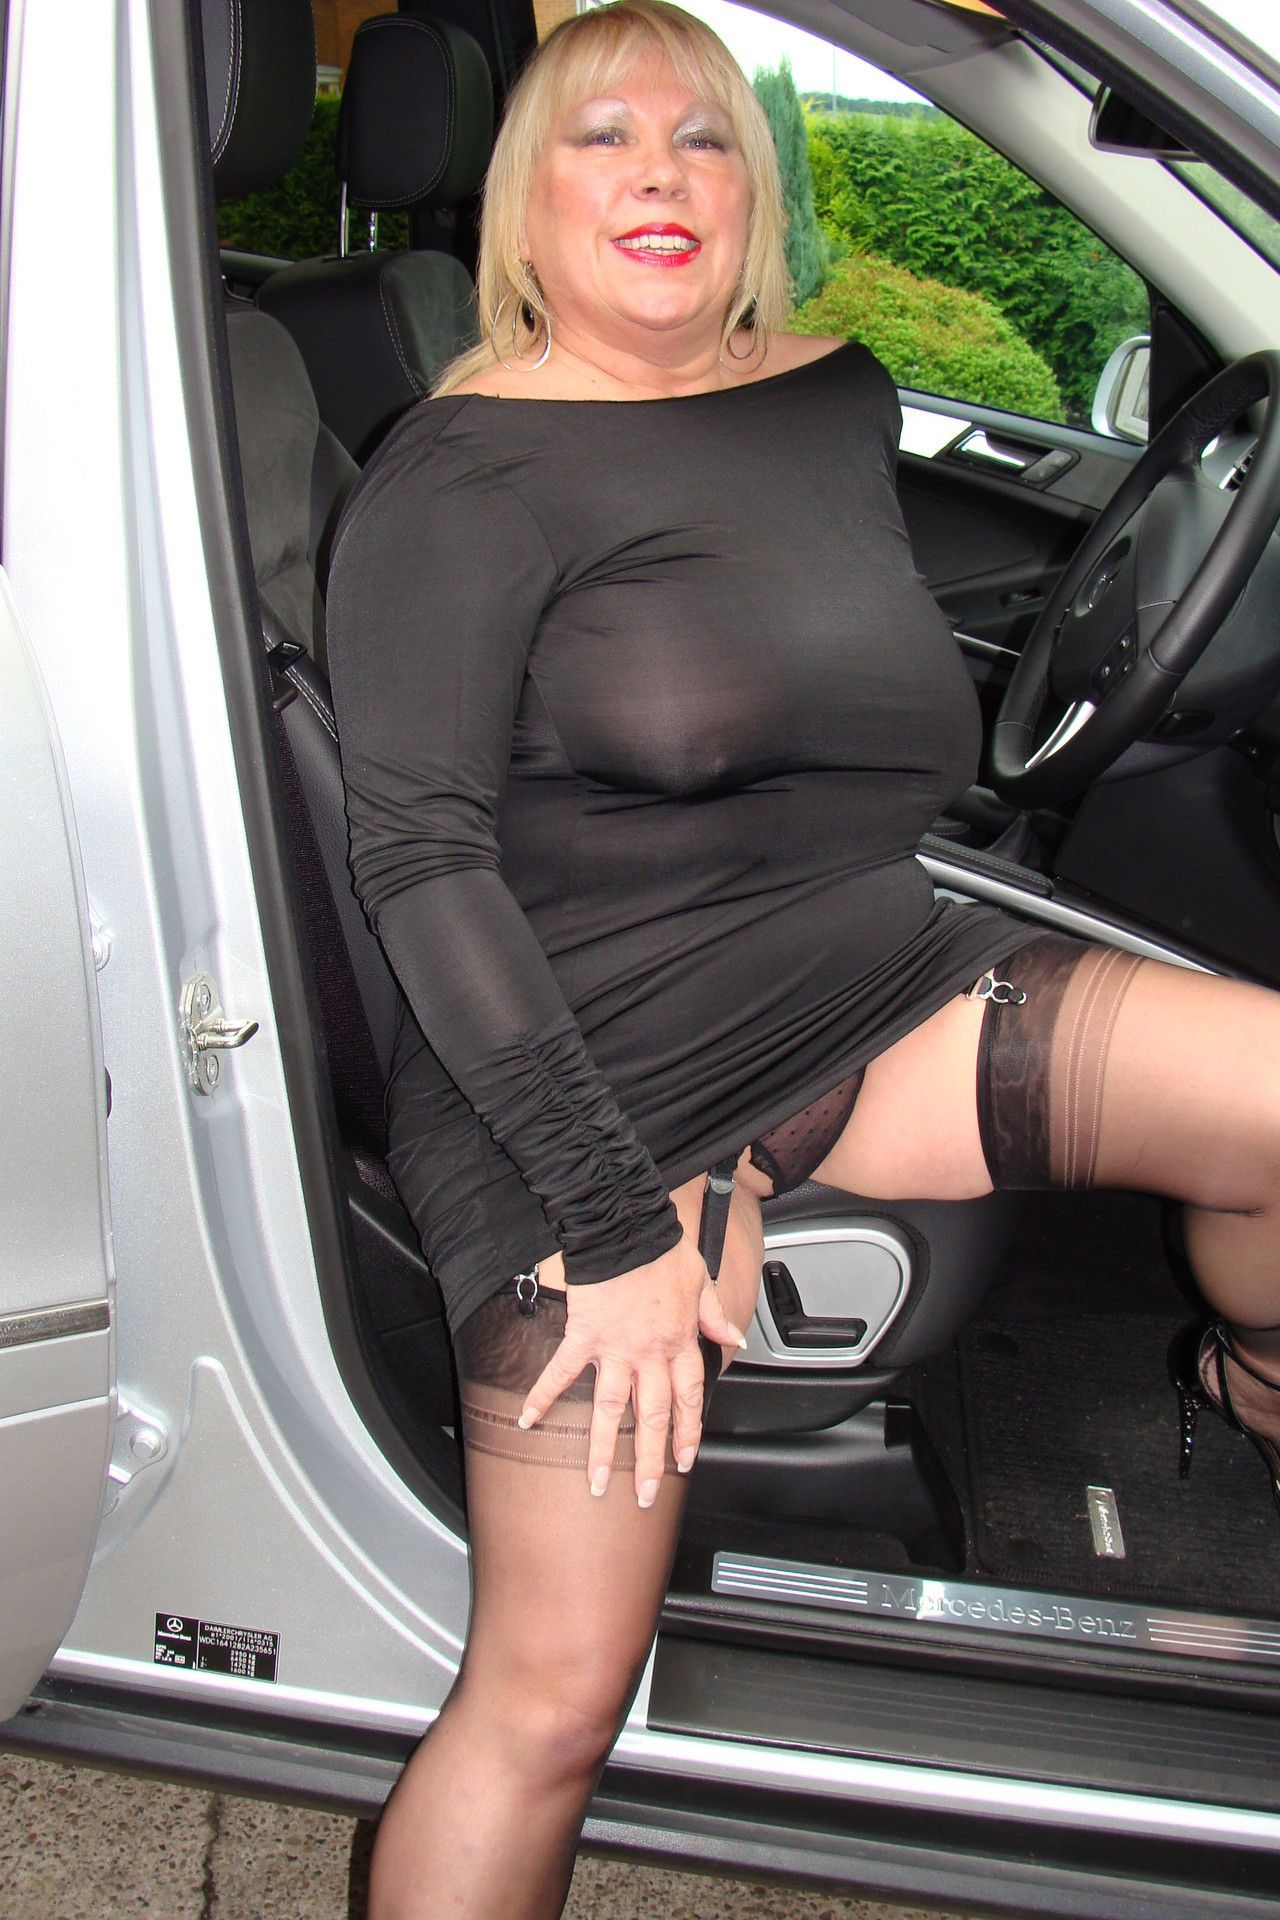 thick mature milf upskirt | upskirt | pinterest | ssbbw, thighs and nice